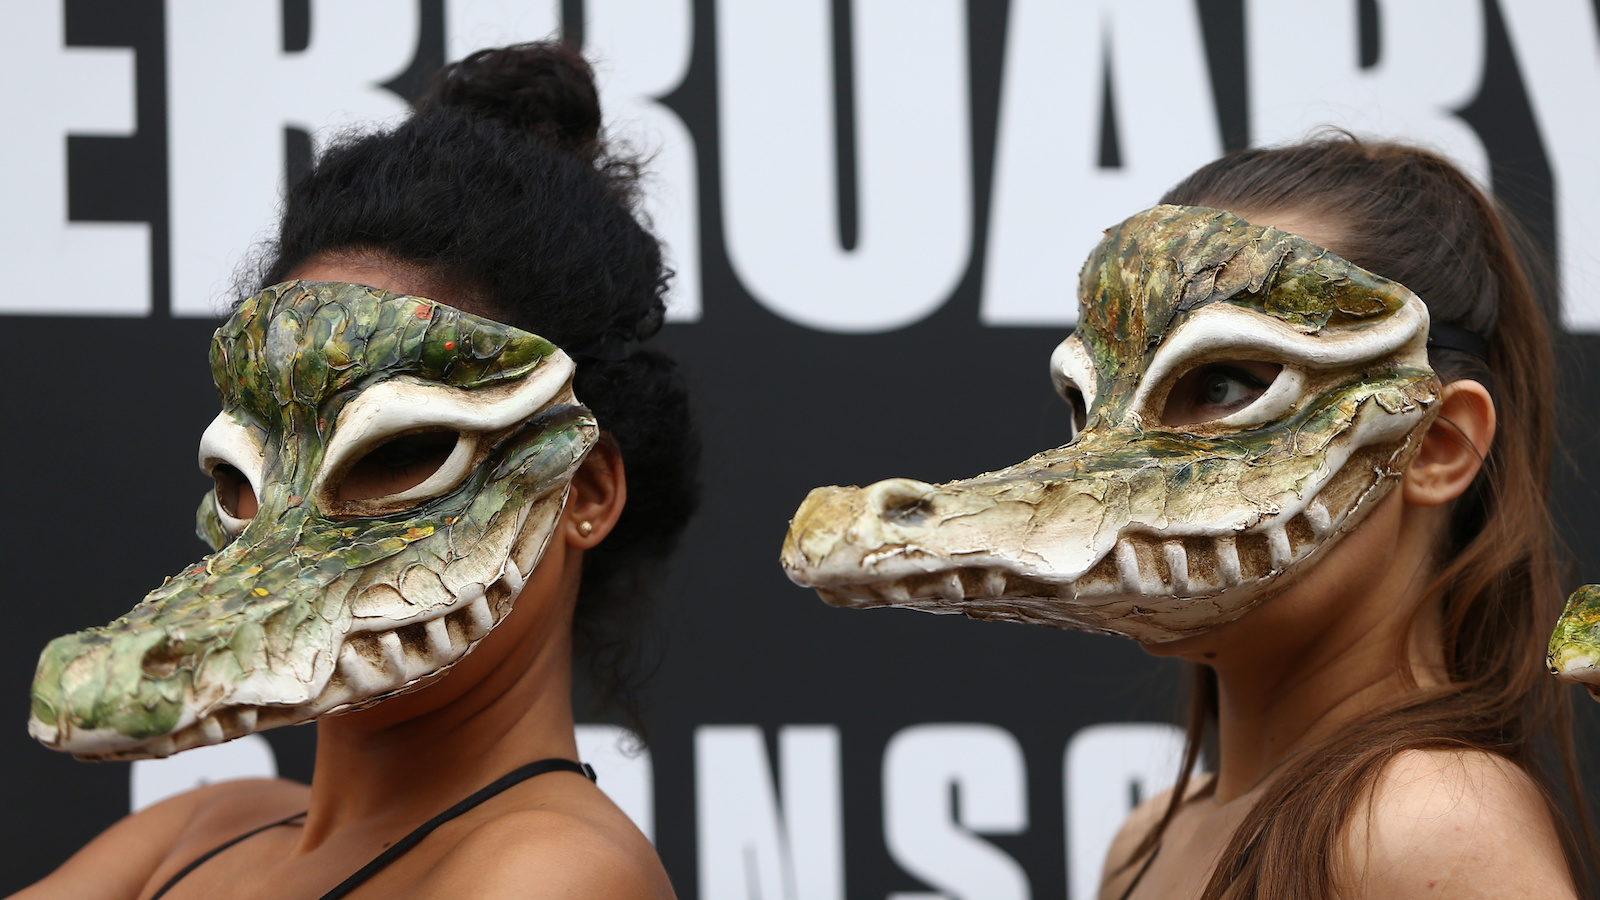 Peta models in crocodile masks protest against the use of crocodile skins in fashion during London Fashion Week in London, Britain February 17, 2017. REUTERS/Neil Hall - RC1F6C286DB0